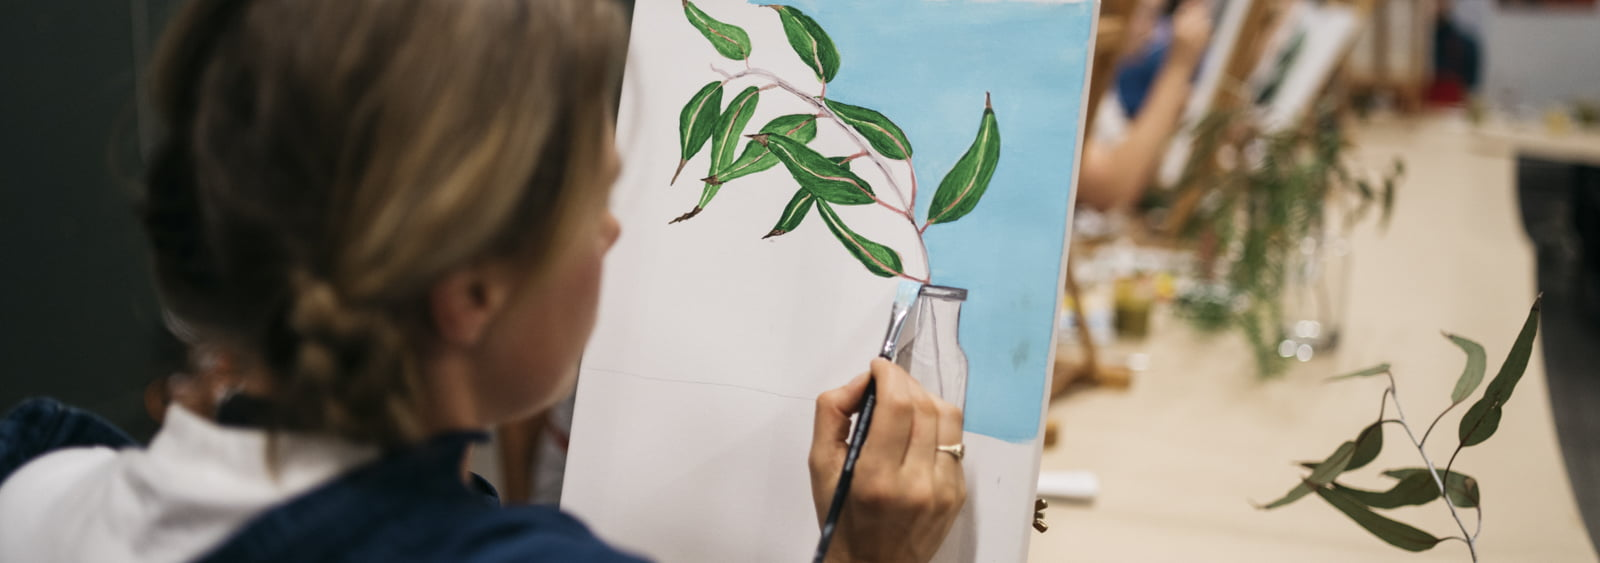 Express yourself with our creative workshops